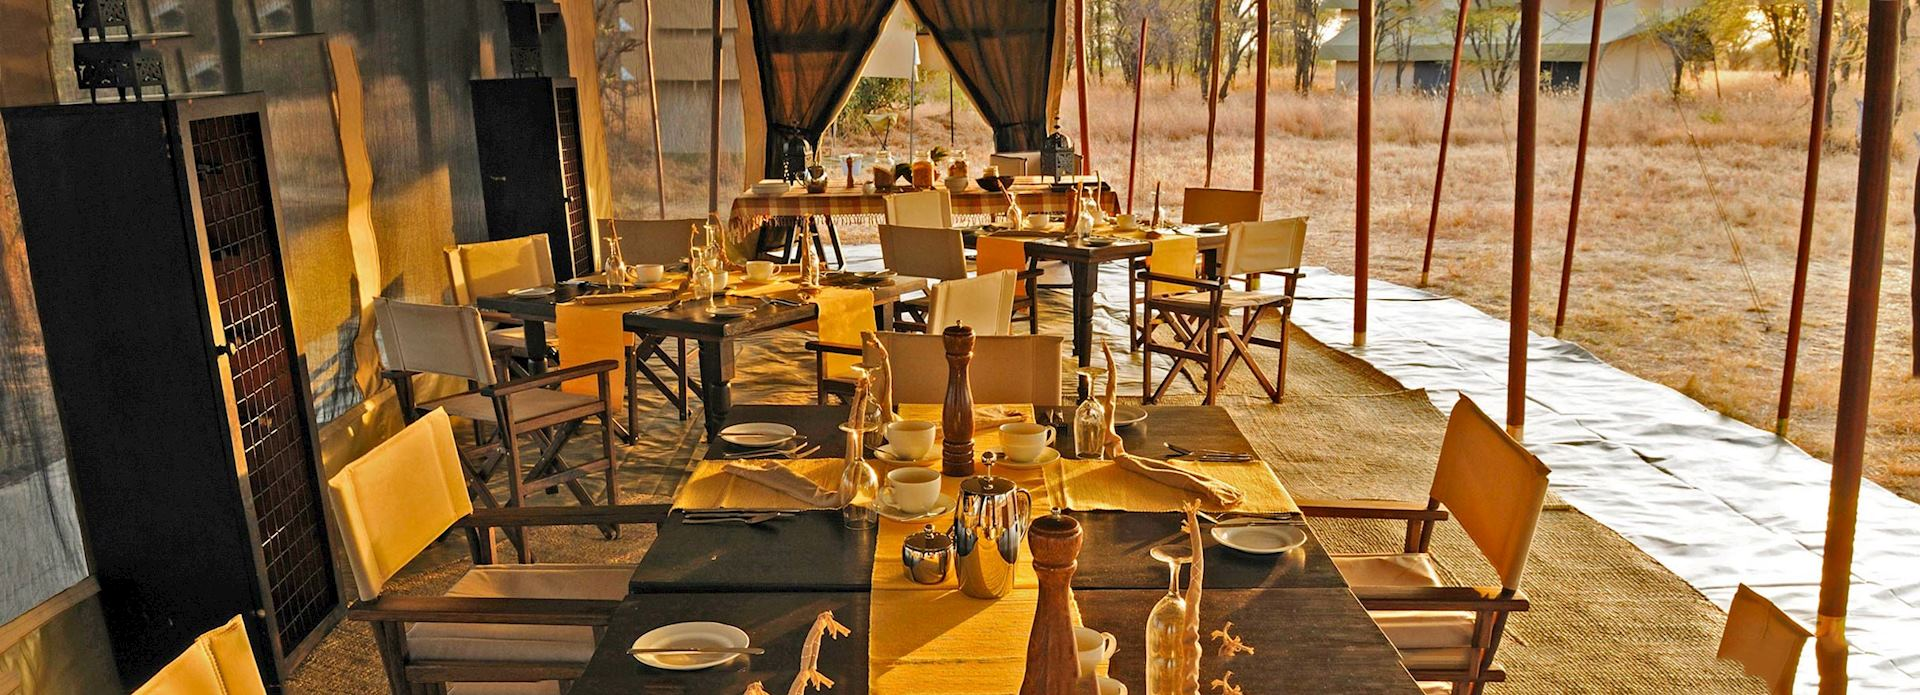 Olakira Mobile Camp, Serengeti National Park